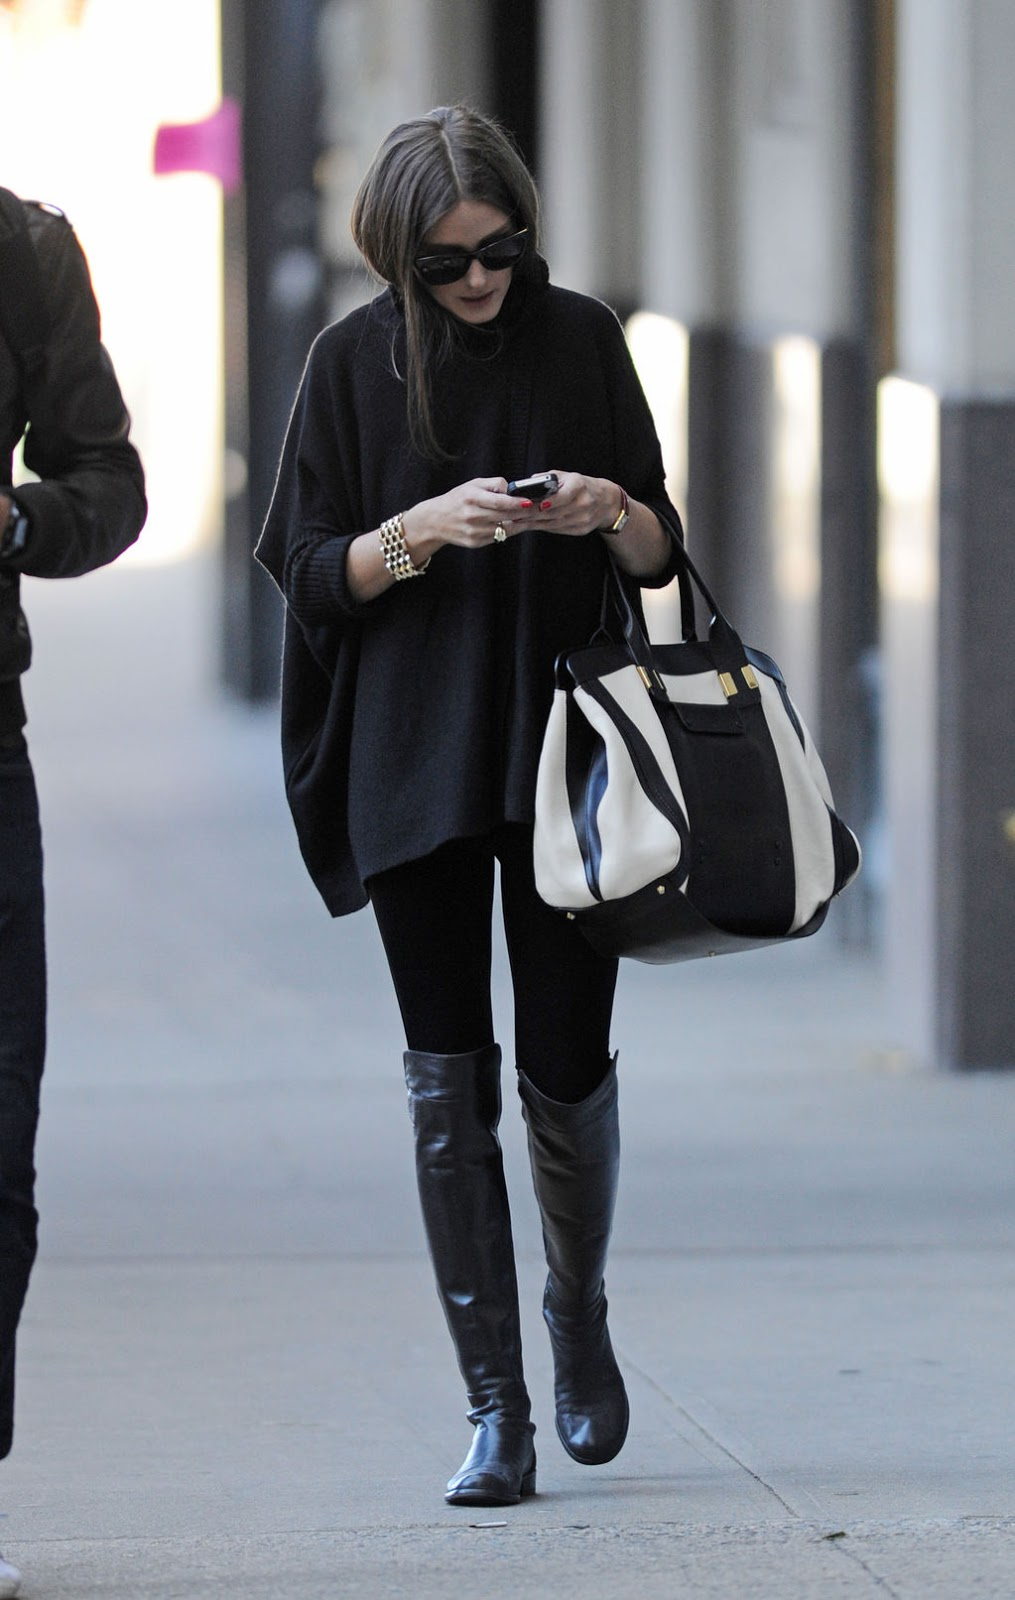 outstanding black dress outfit for winter 13